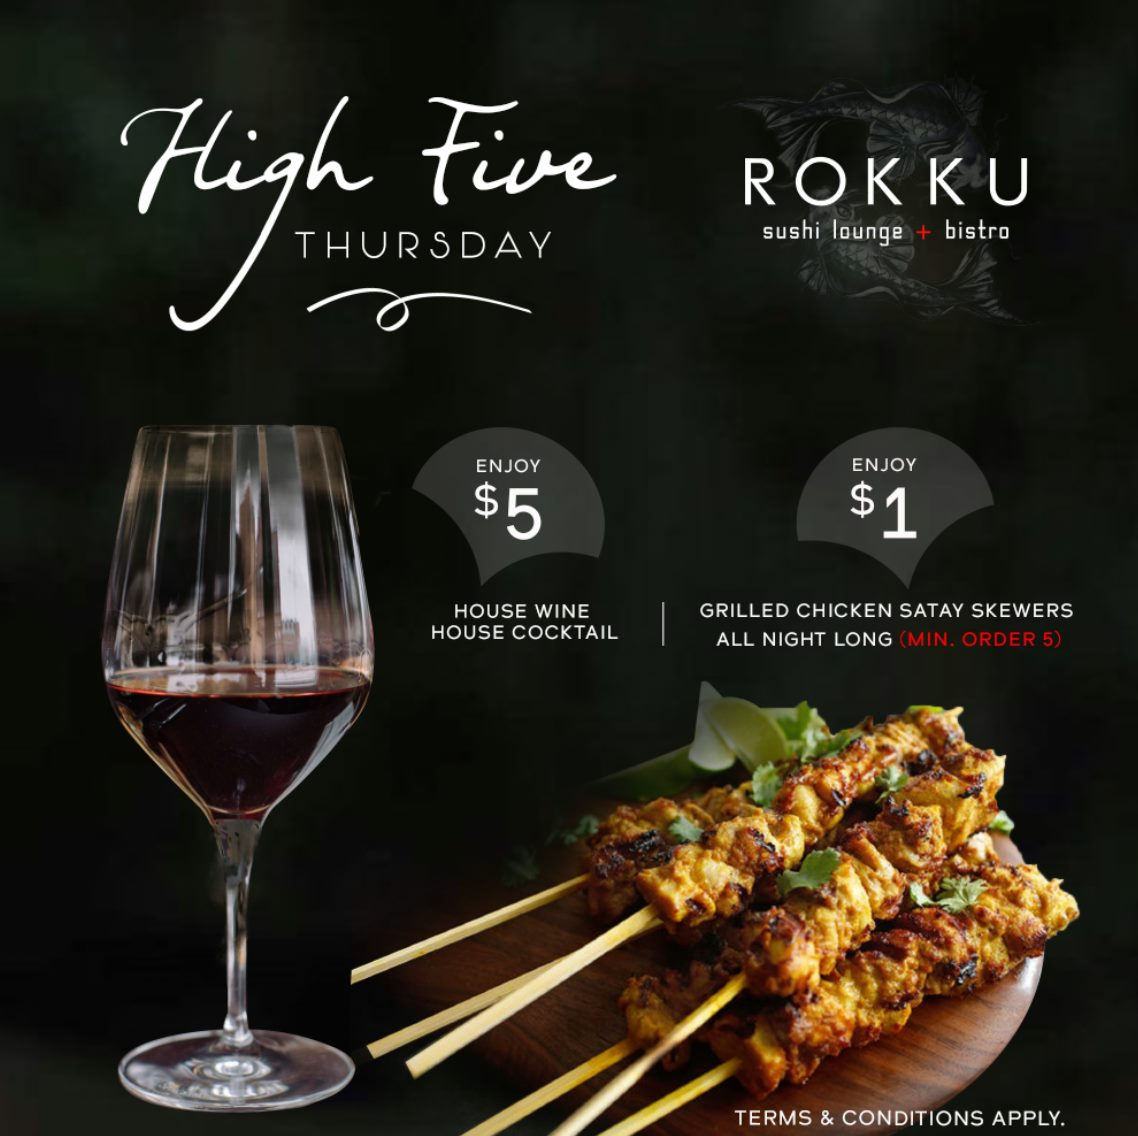 HIGH FIVE THURSDAY AT ROKKU ON MARCH 4TH